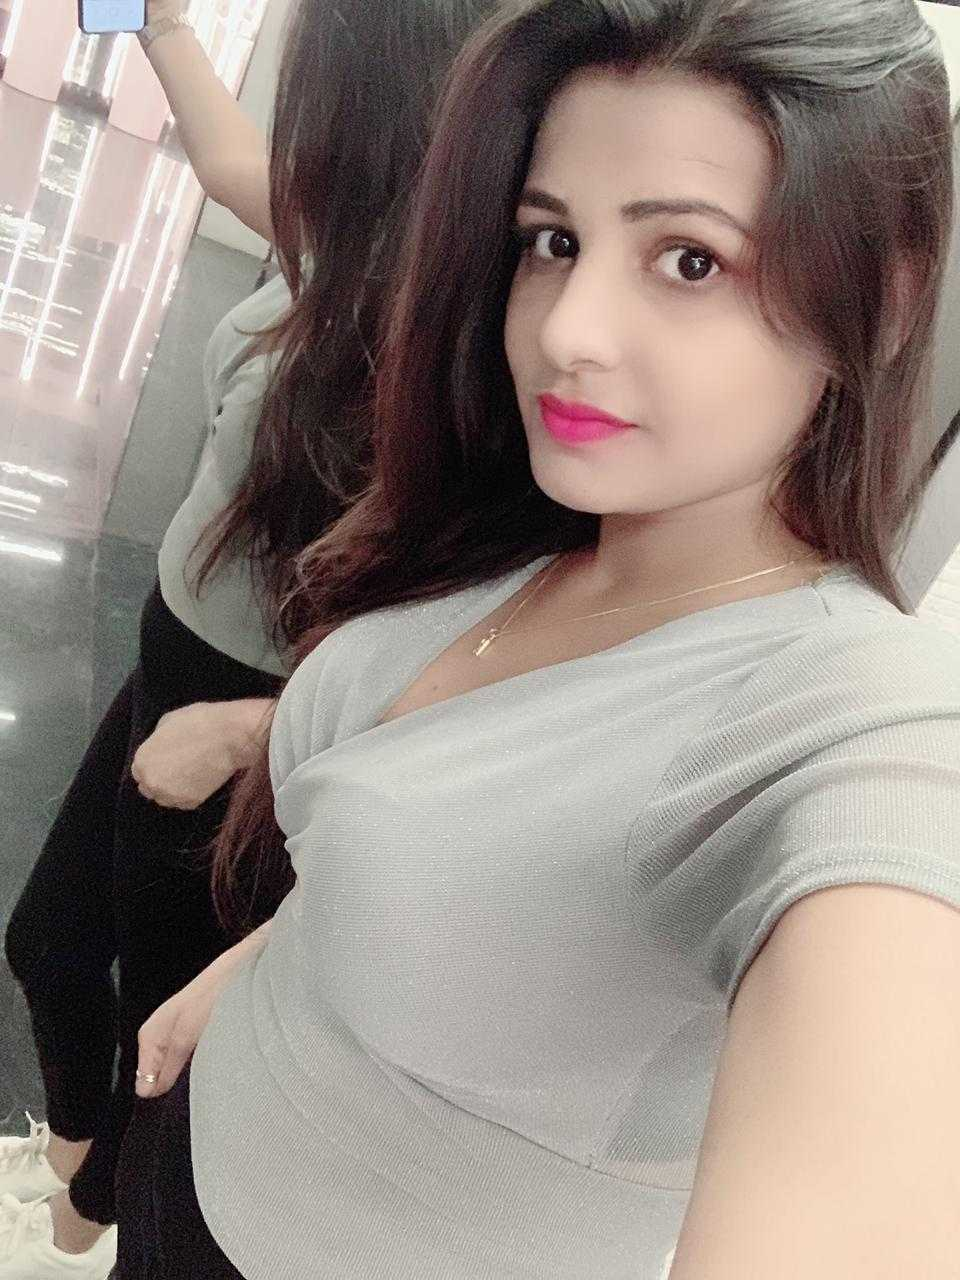 delhi call girl photo and number